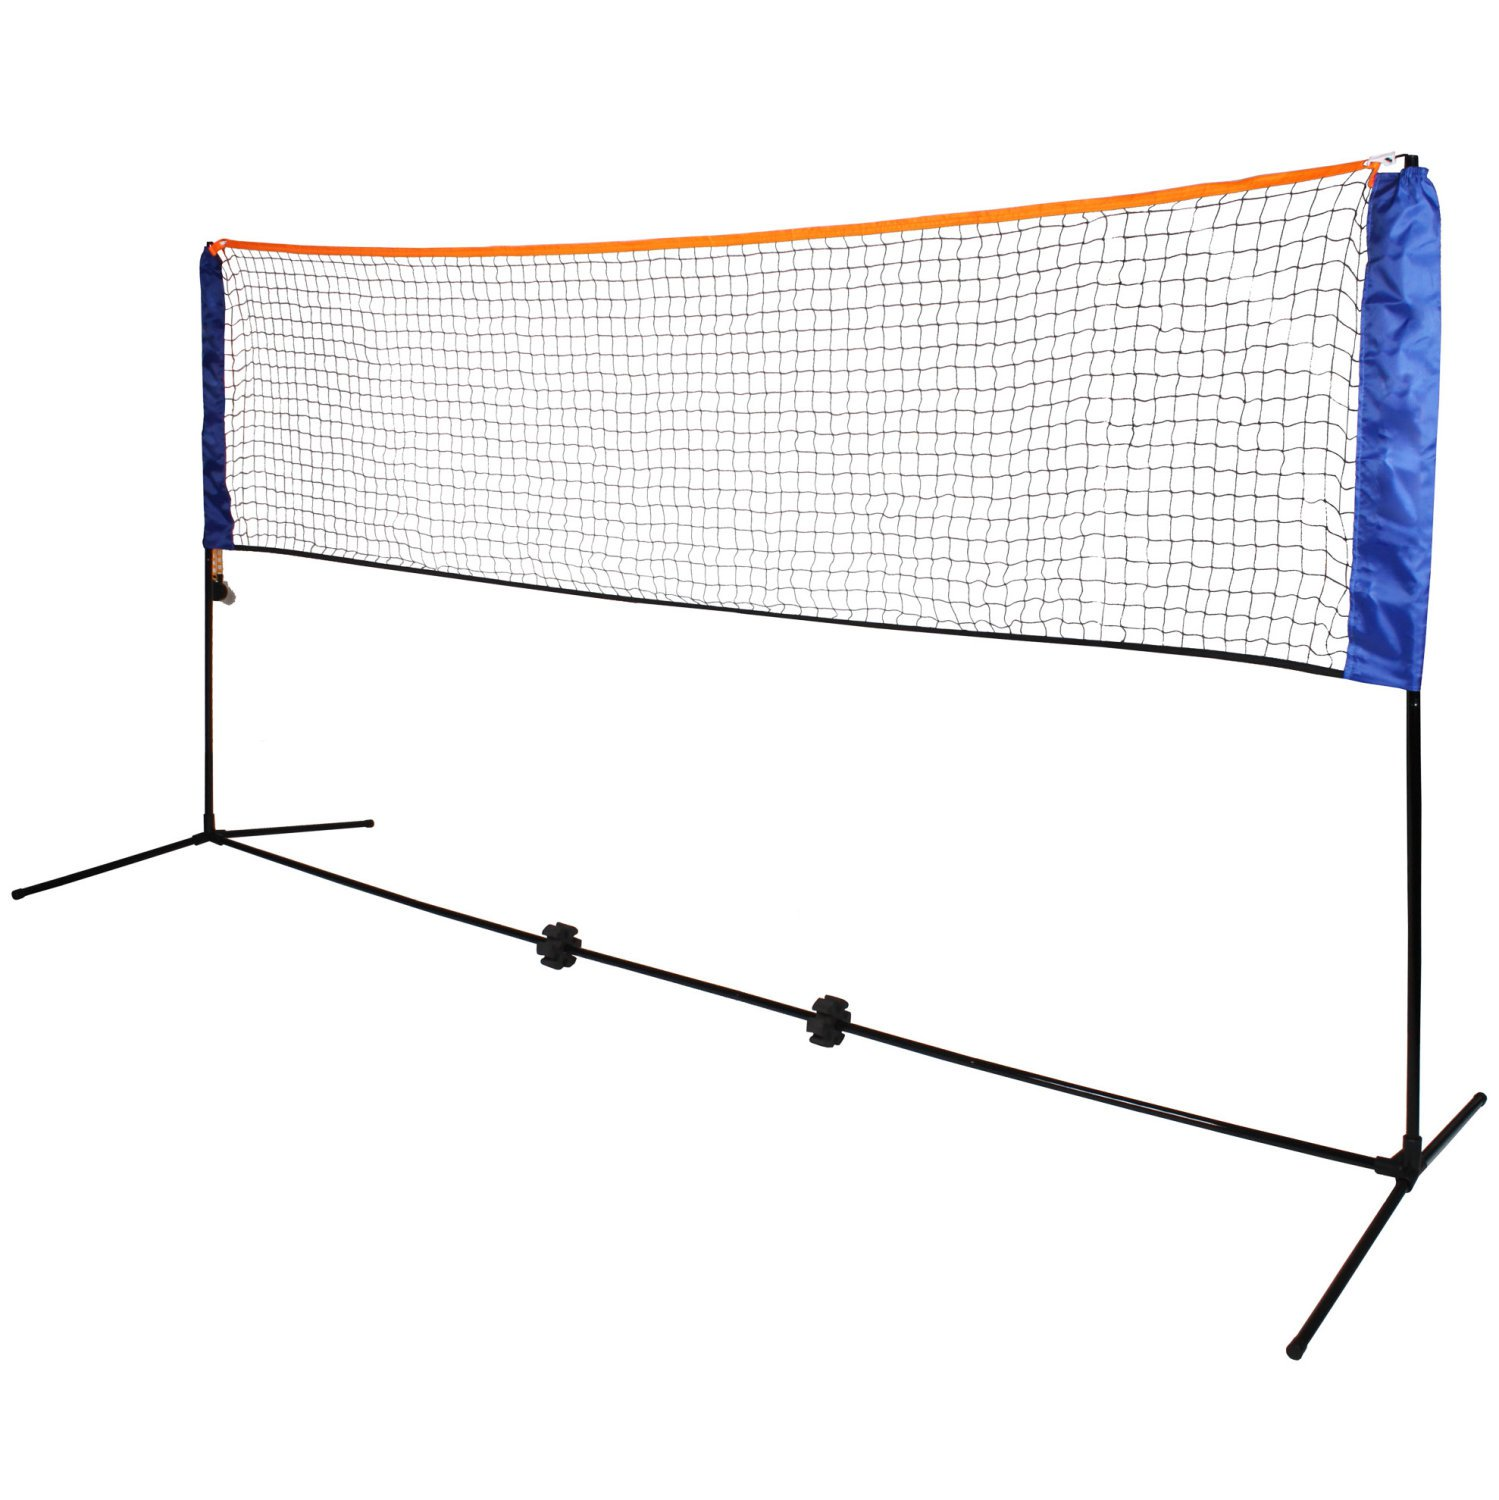 Large 5m Adjustable Foldable Badminton Tennis Volleyball Net